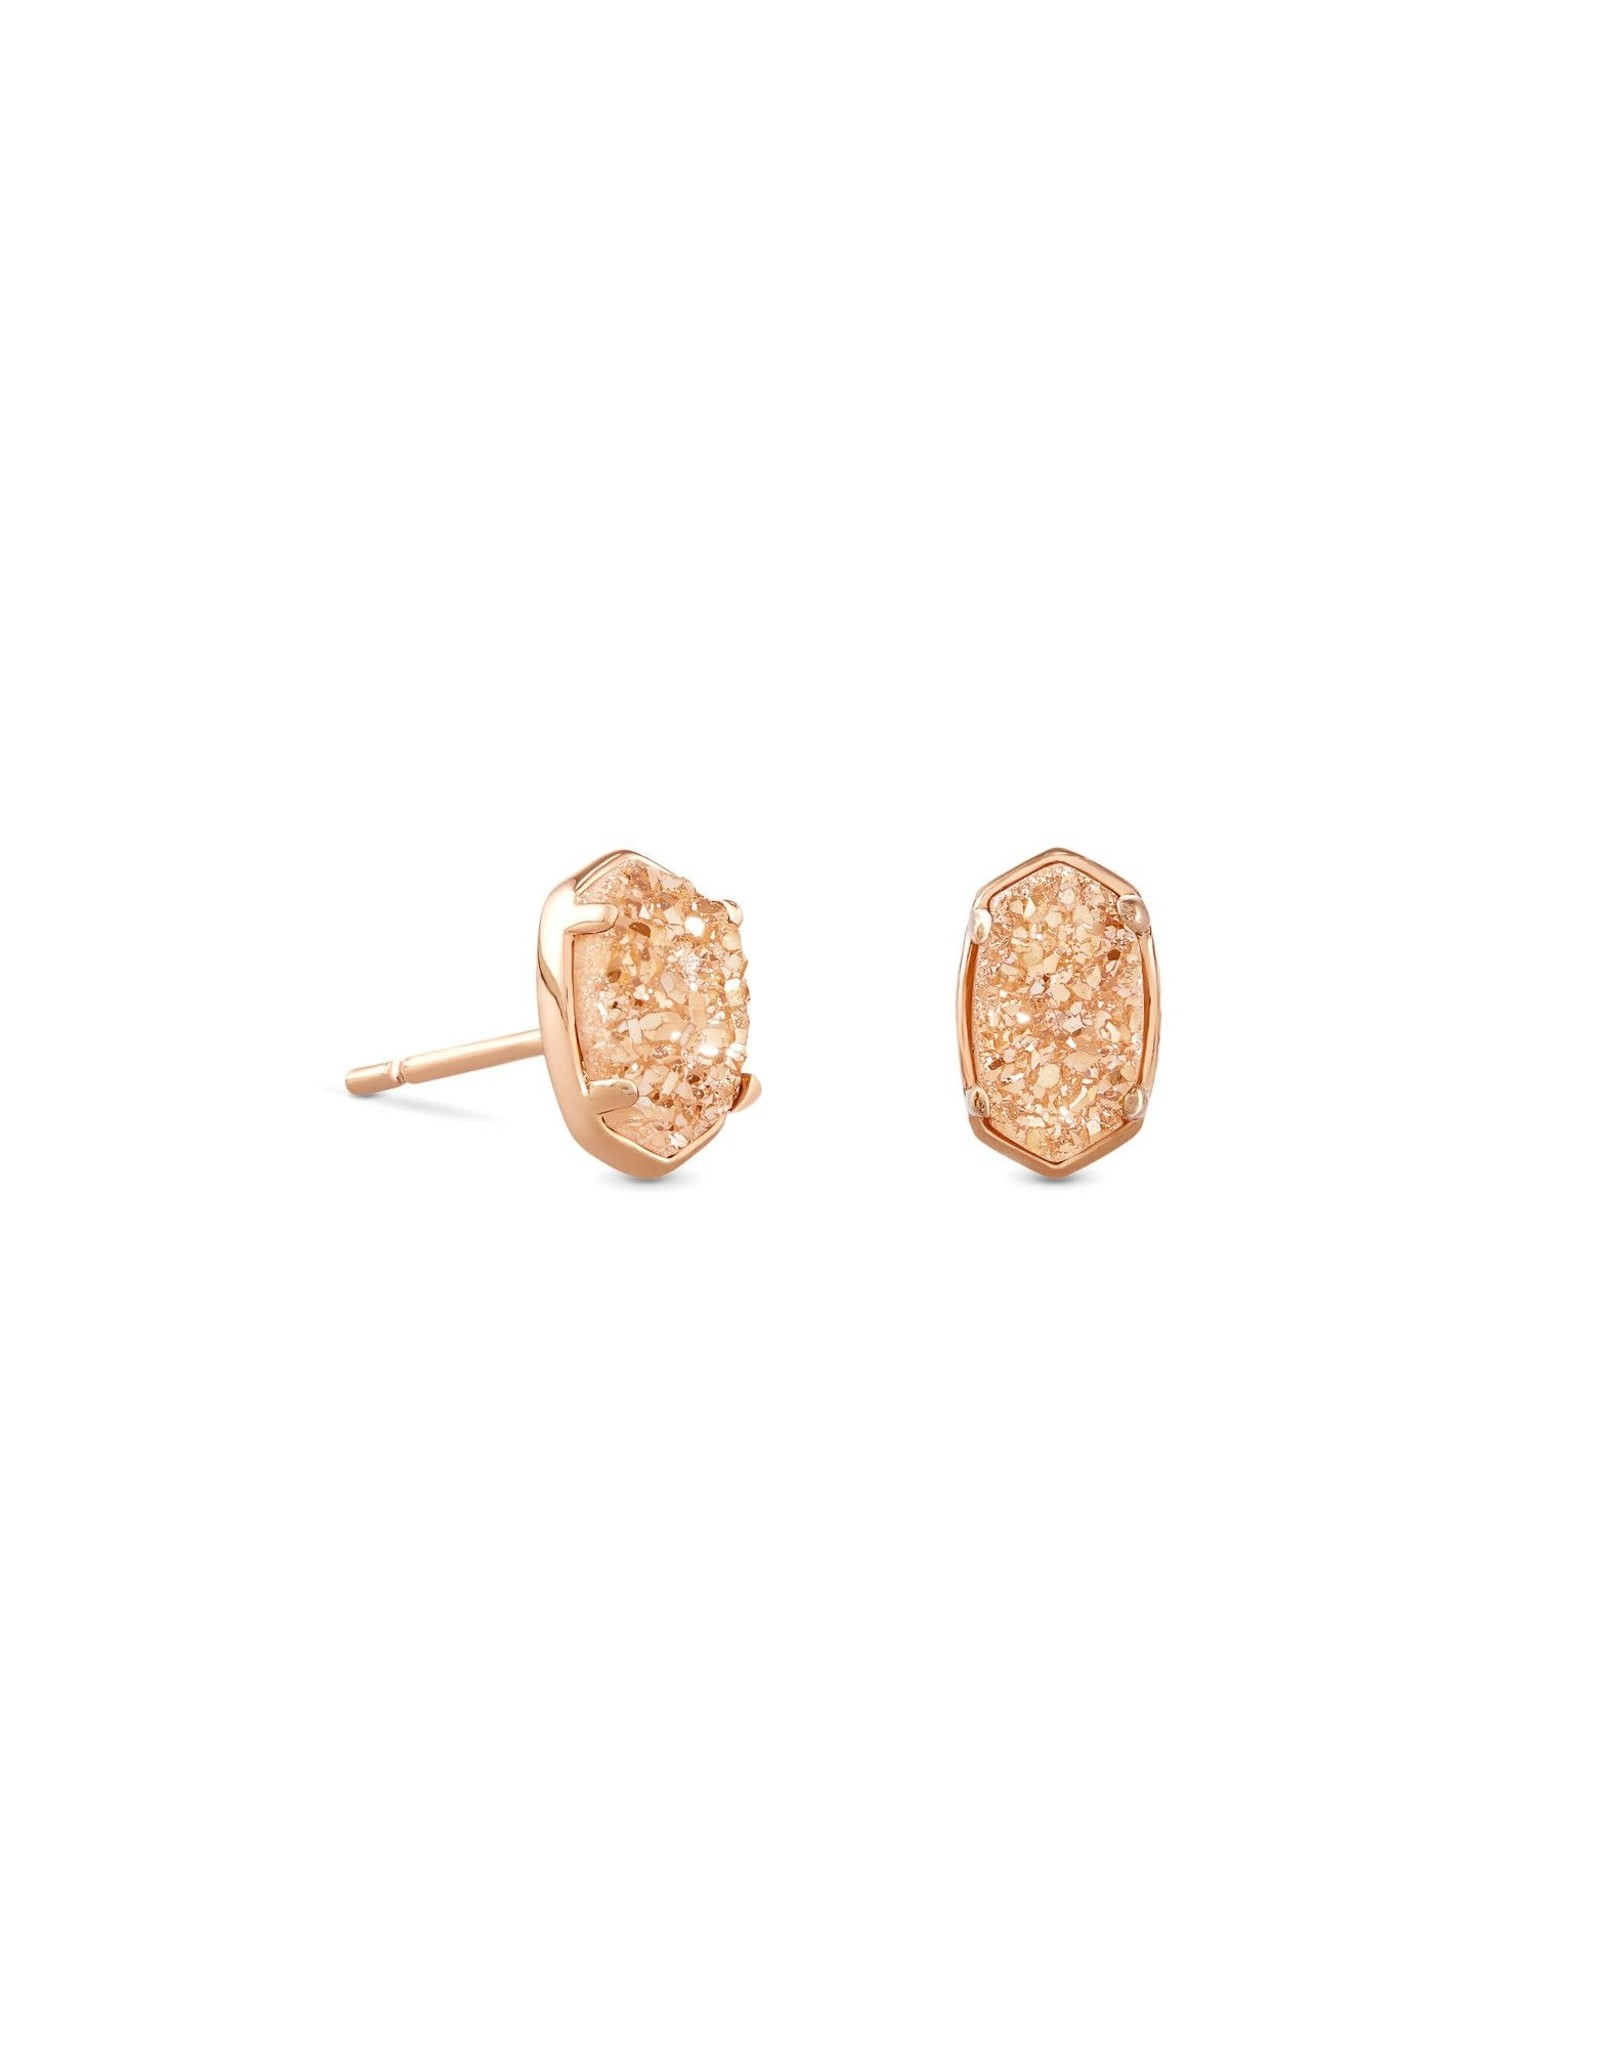 Kendra Scott Emilie Stud Earring - Rose Gold Drusy/Rose Gold